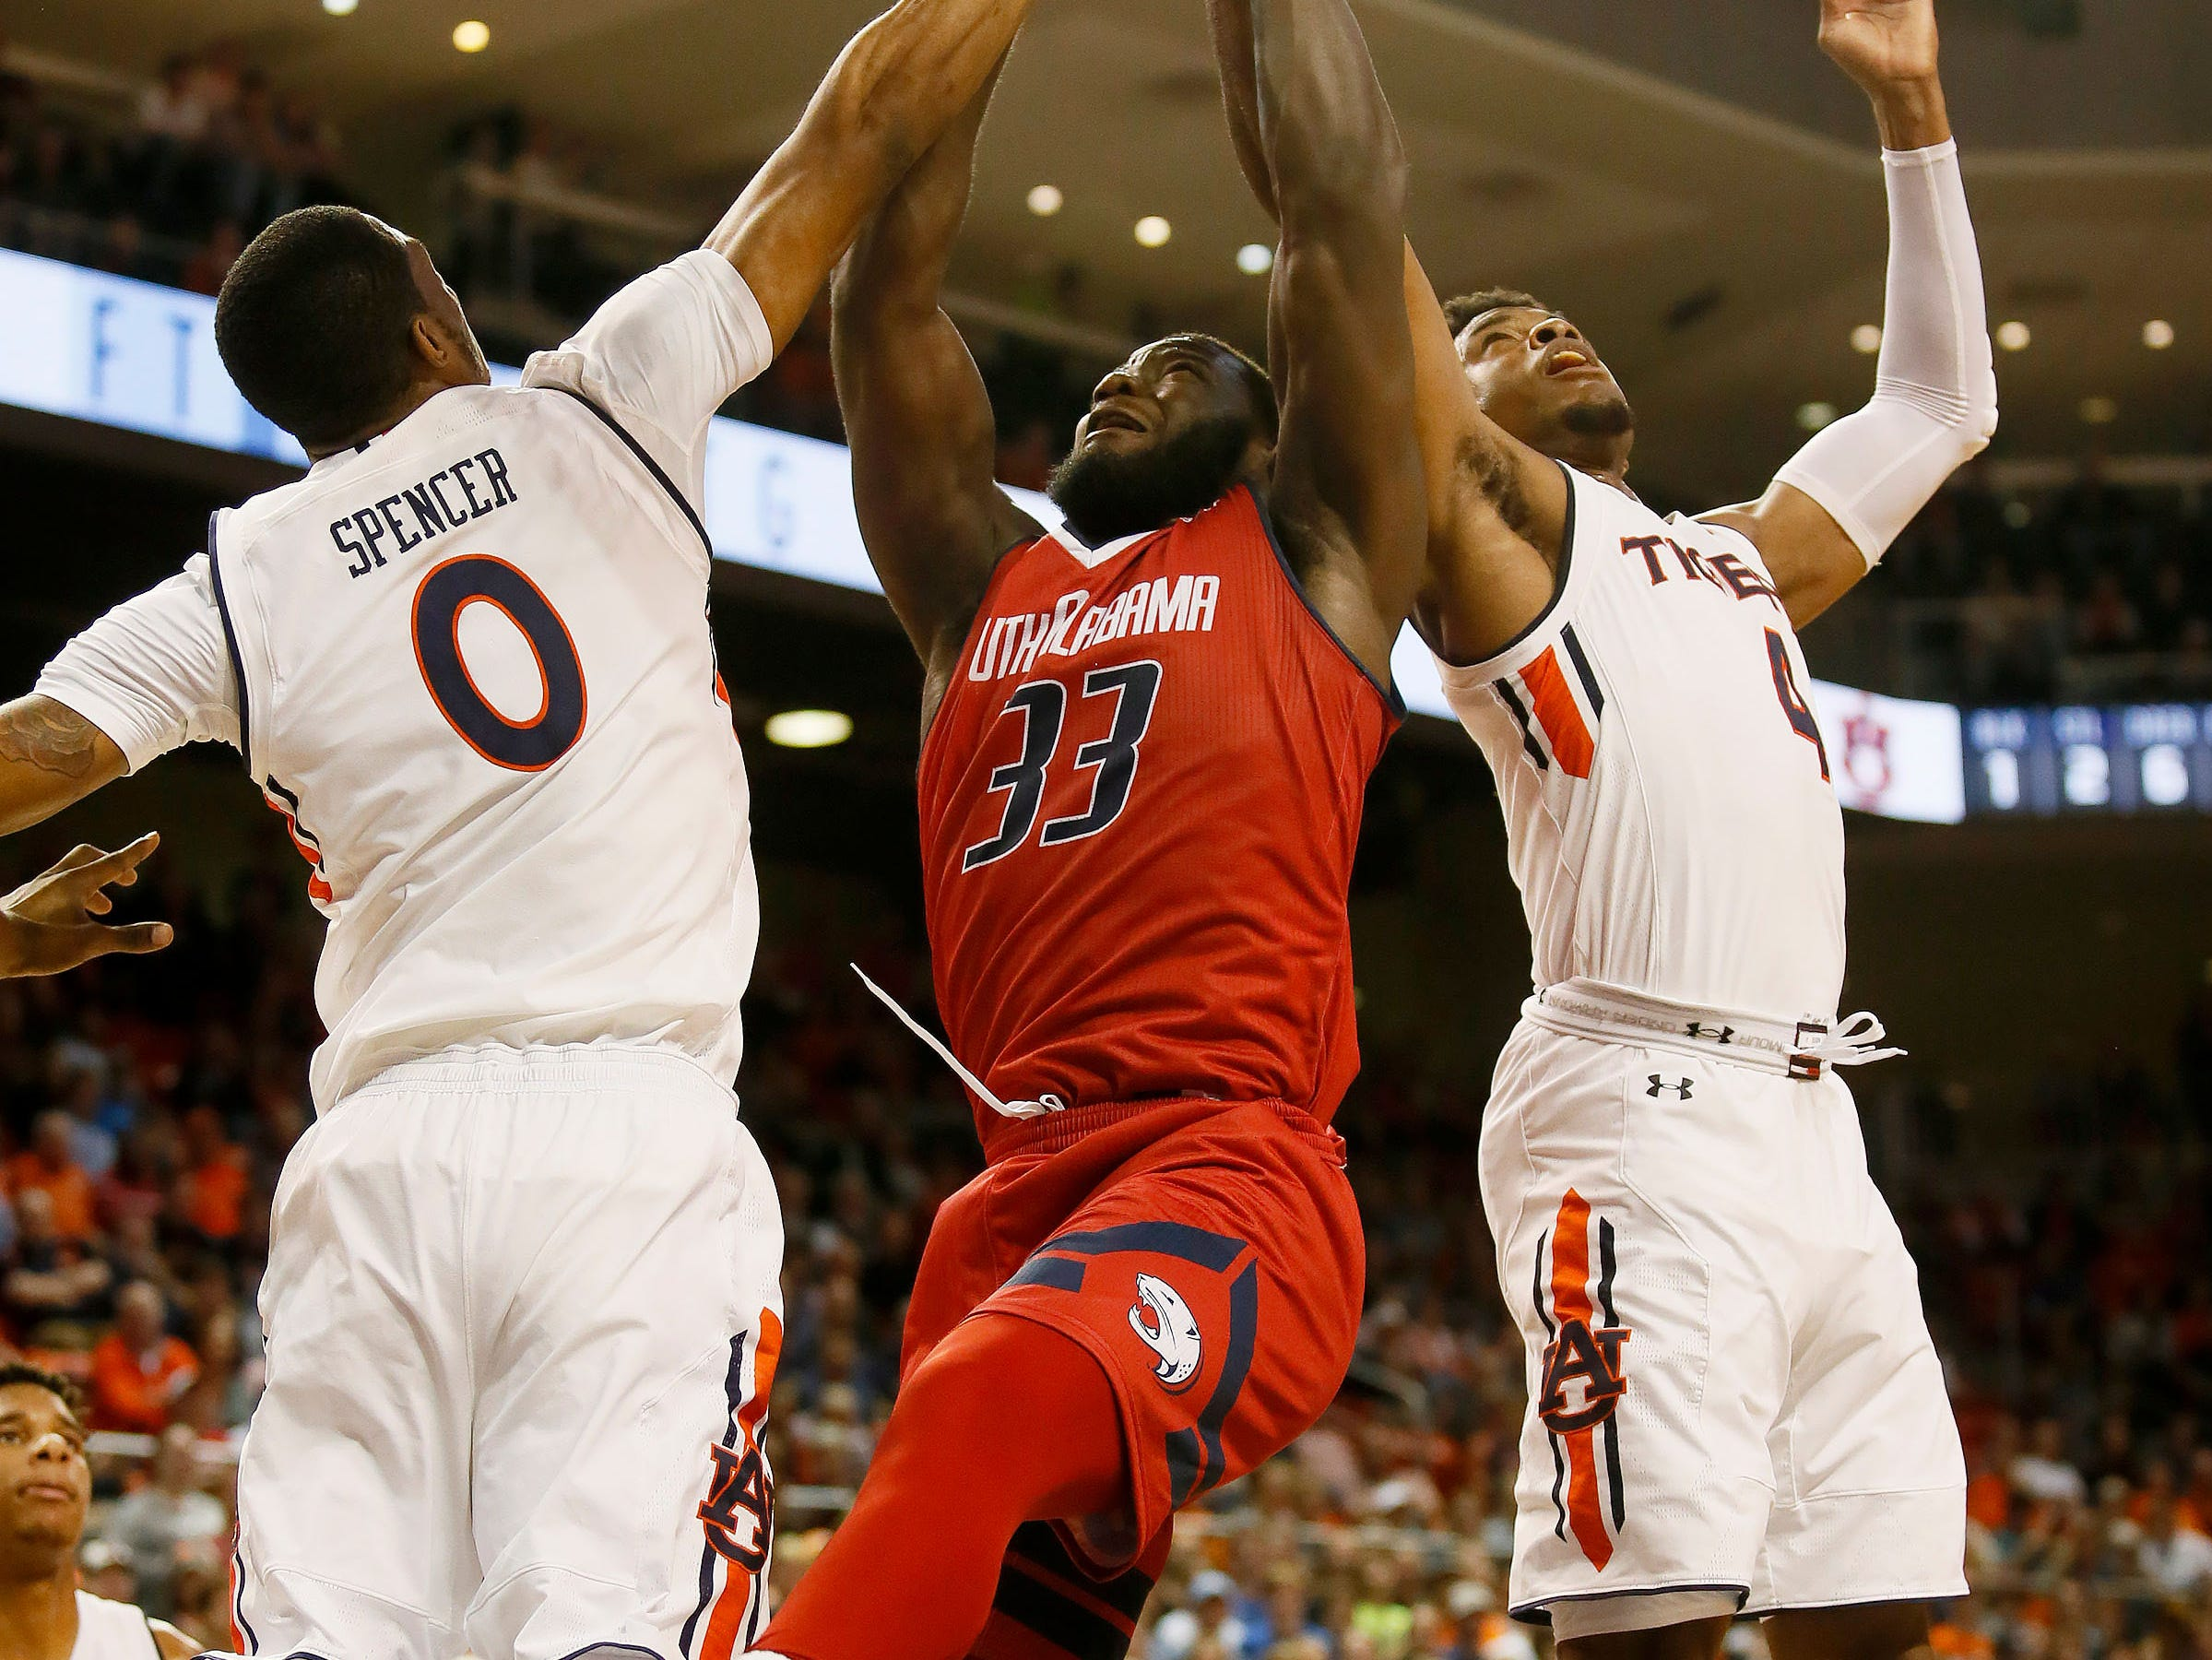 Nov 6, 2018; Auburn, AL, USA; South Alabama Jaguars forward Josh Ajayi (33) fights for a rebound with Auburn Tigers forward Horace Spencer (0) and guard Malik Dunbar (4) during the first half at Auburn Arena. Mandatory Credit: John Reed-USA TODAY Sports